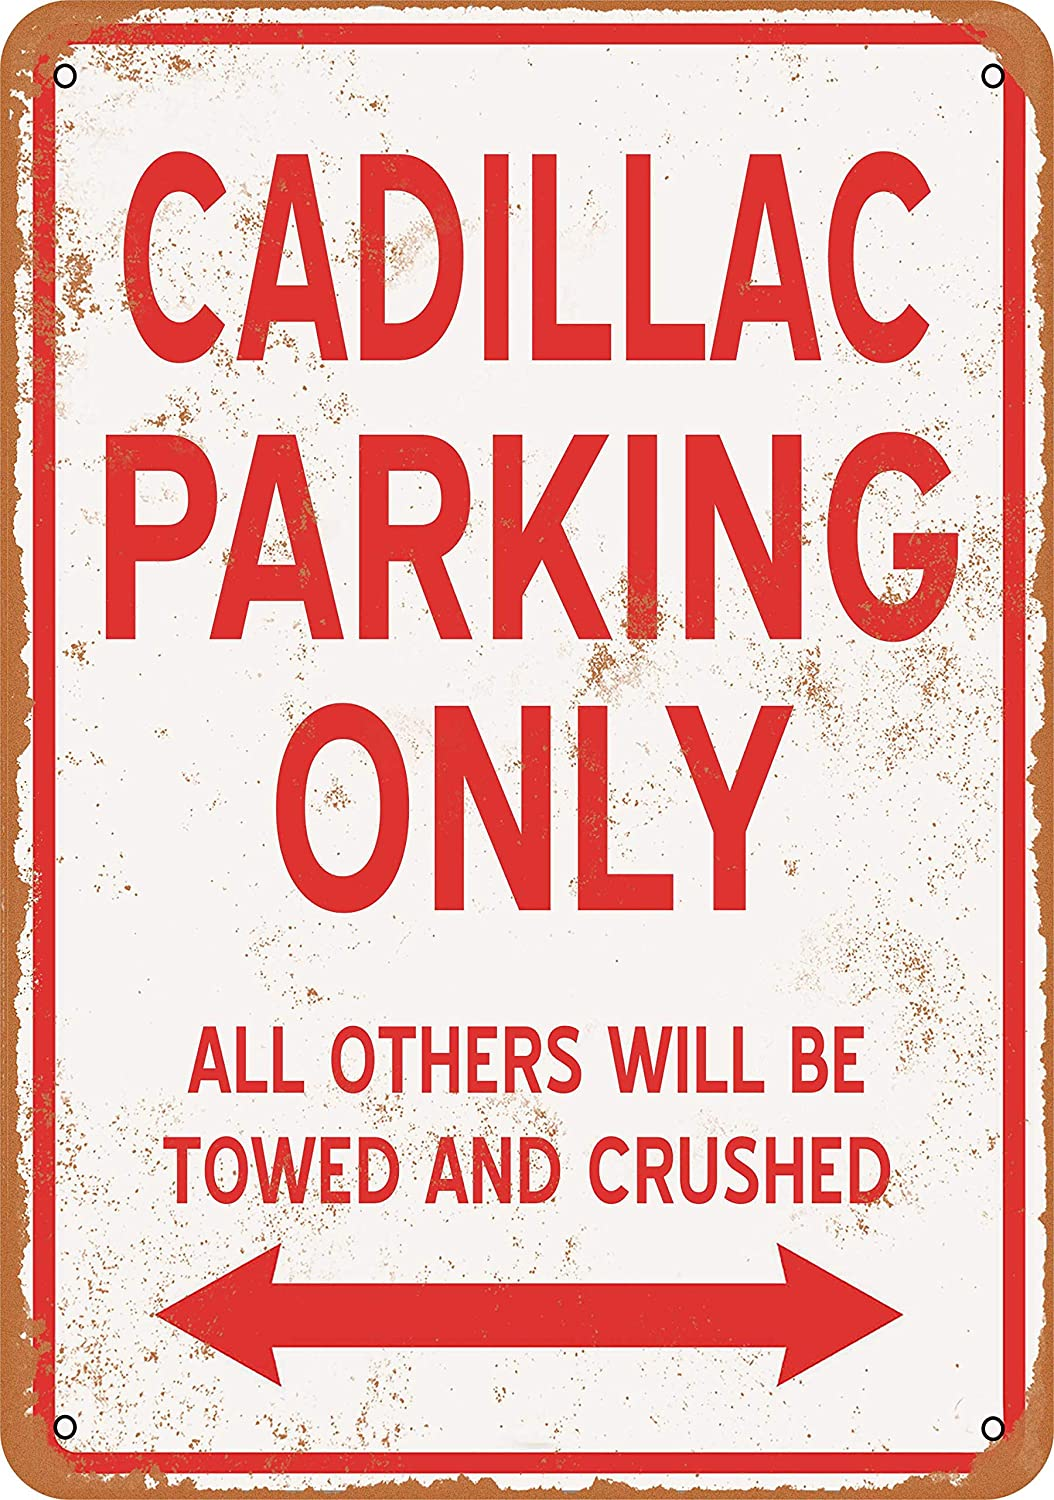 Wall-Color 7 x 10 Metal Sign - Cadillac Parking ONLY - Vintage Look